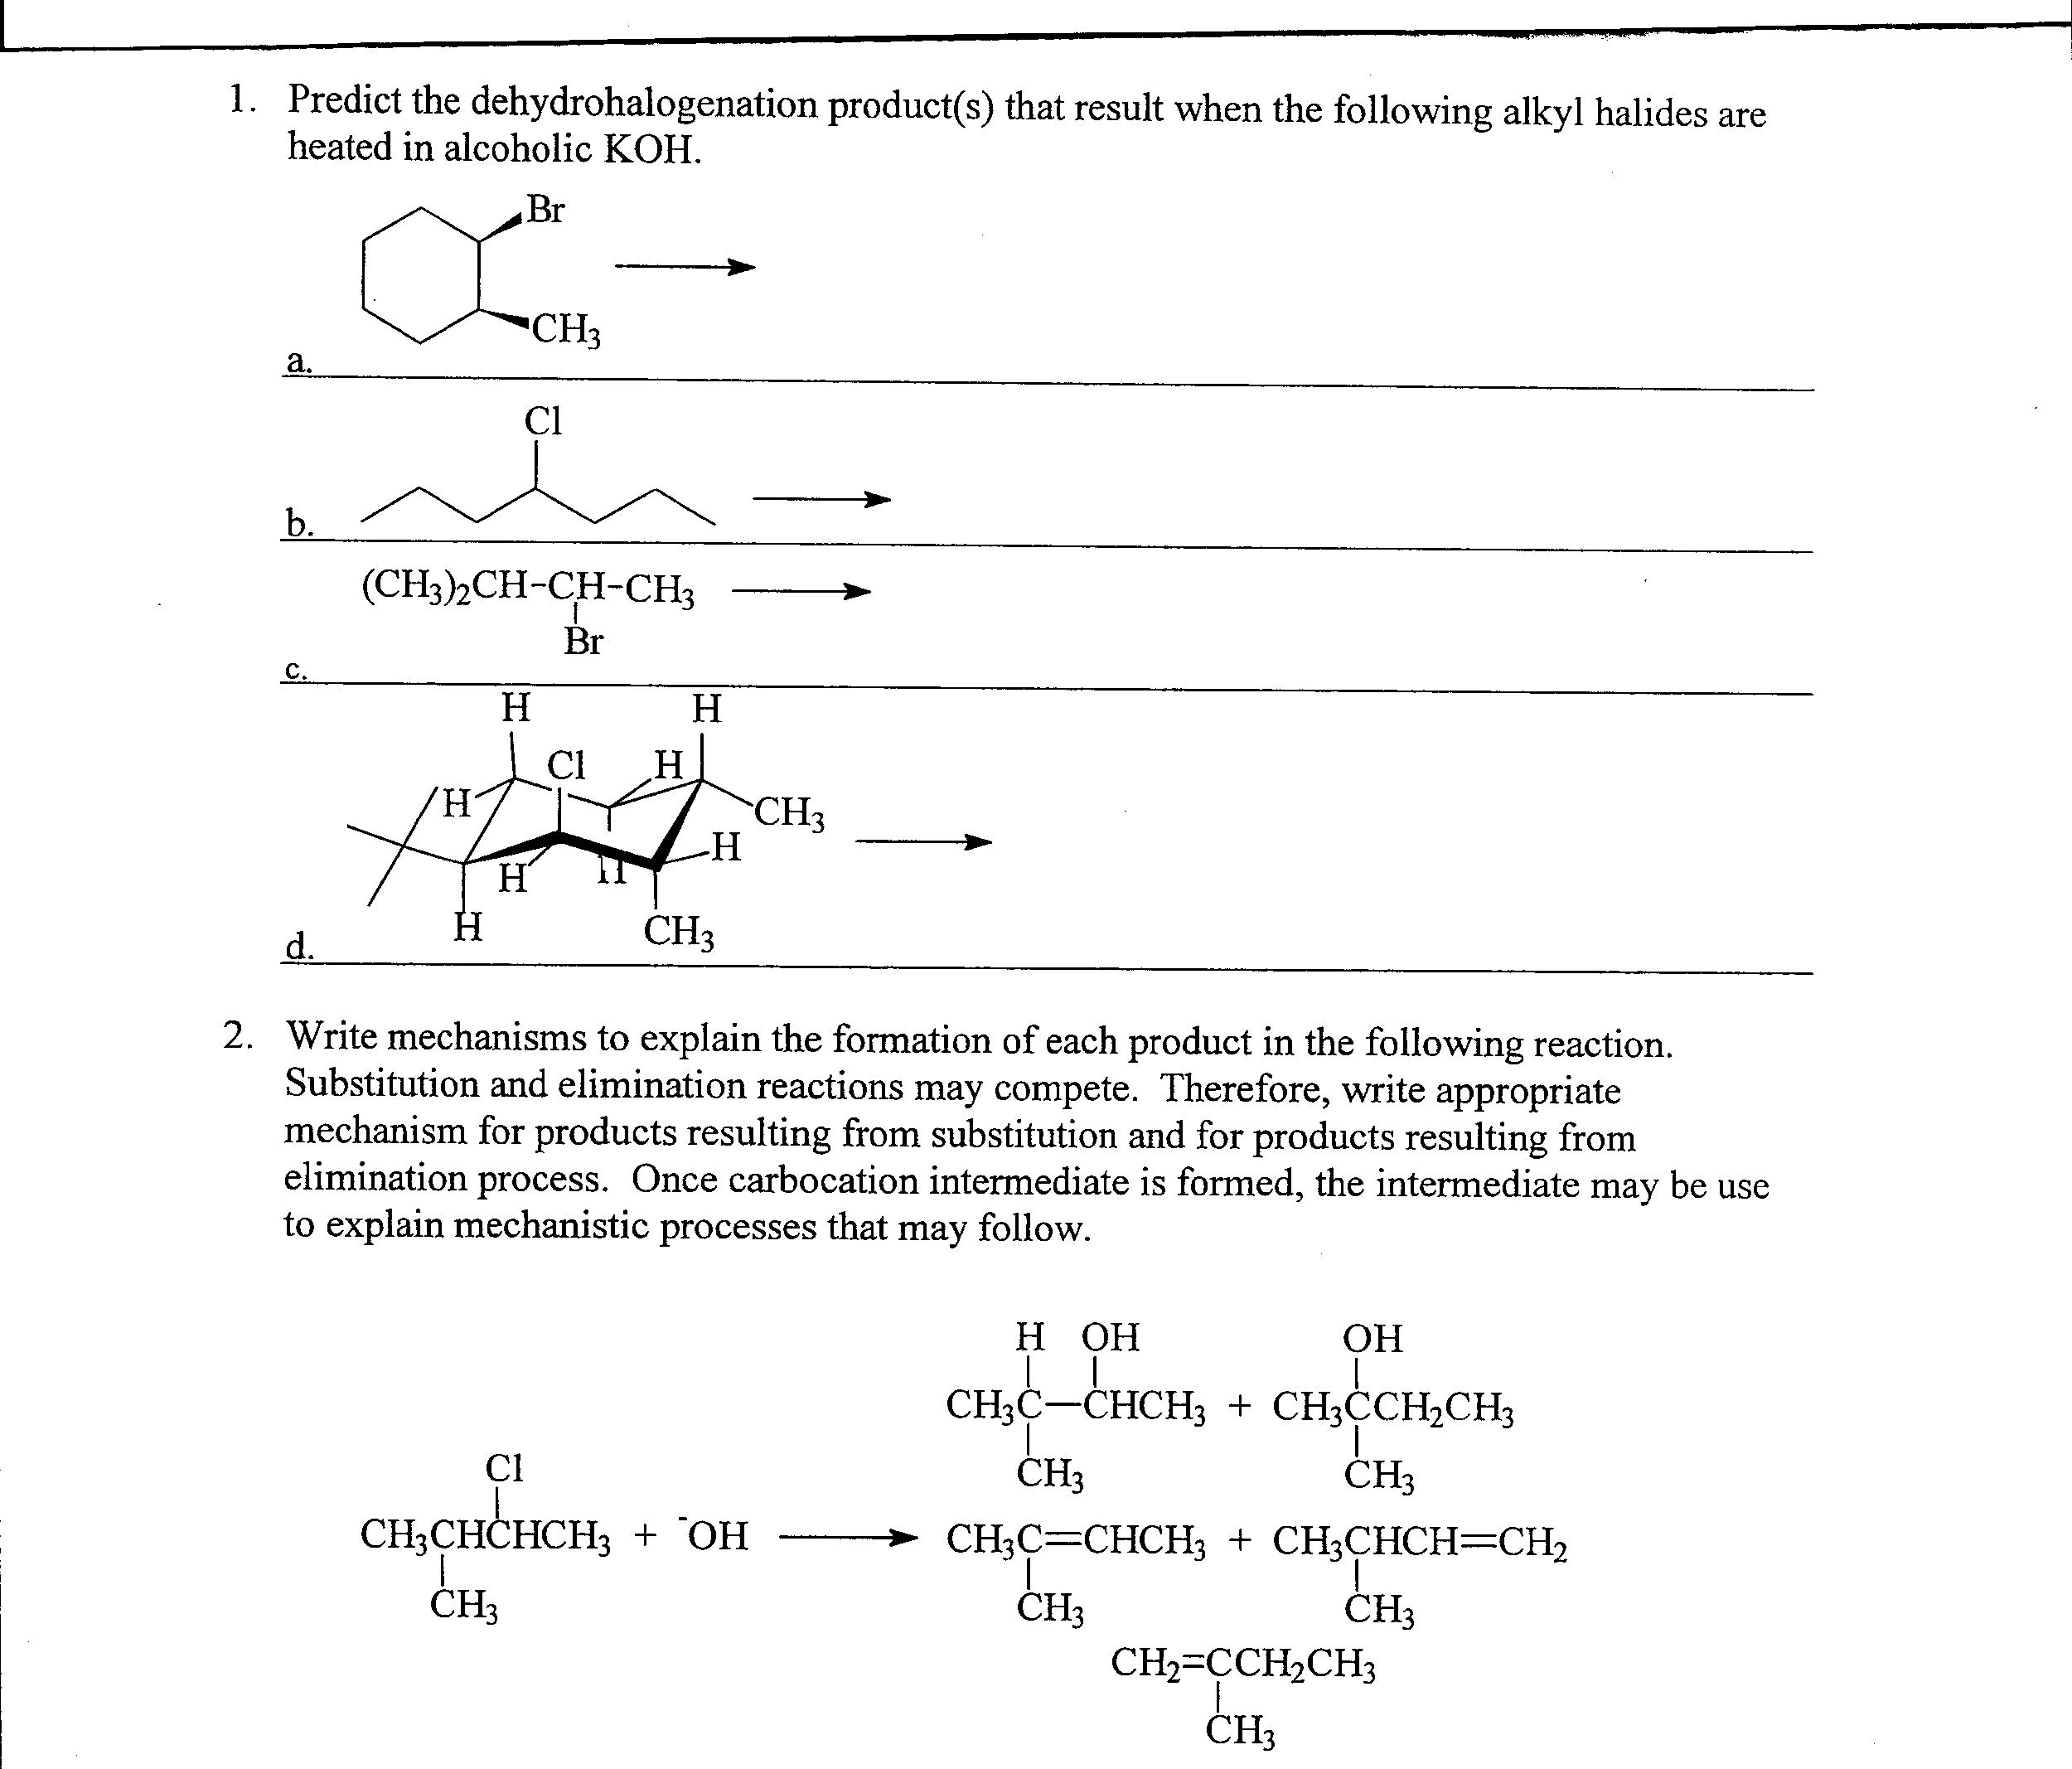 Write a mechanism for the following reaction dehydrohalogenation